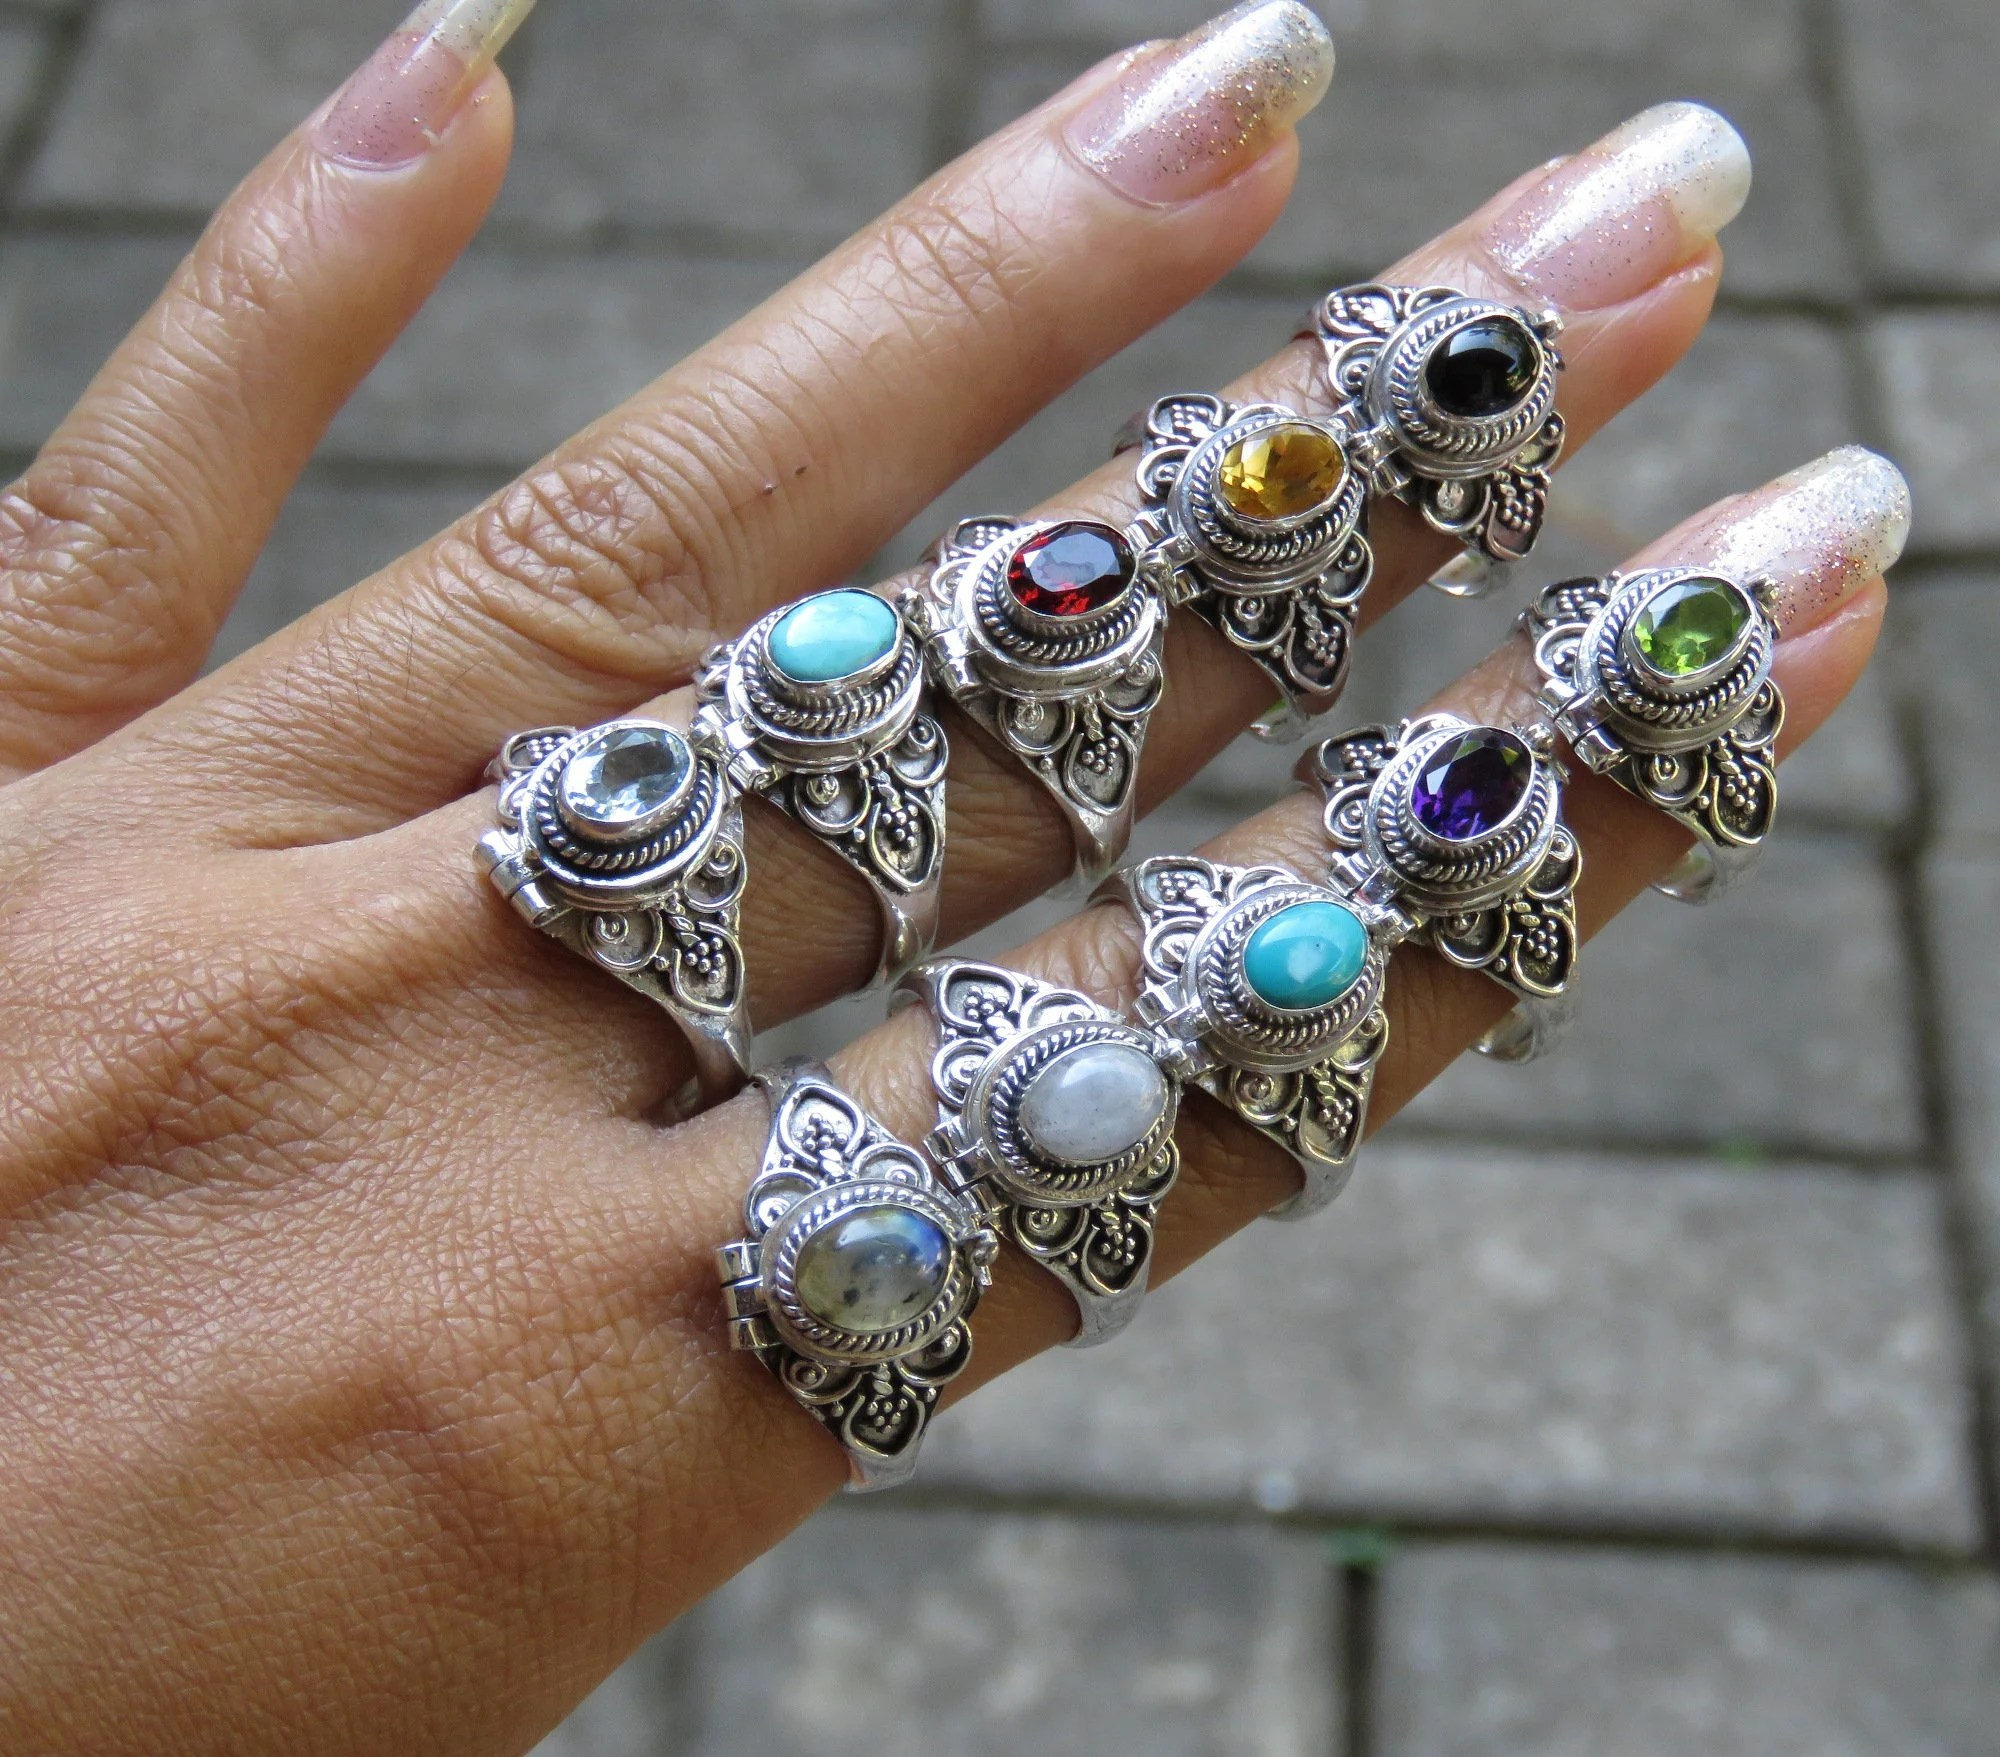 Wholesale Jewelry Bali Wholesale Lots 925 Silver 10 Assorted Gemstone Bali Style Locket Poison Rings Ssb 401